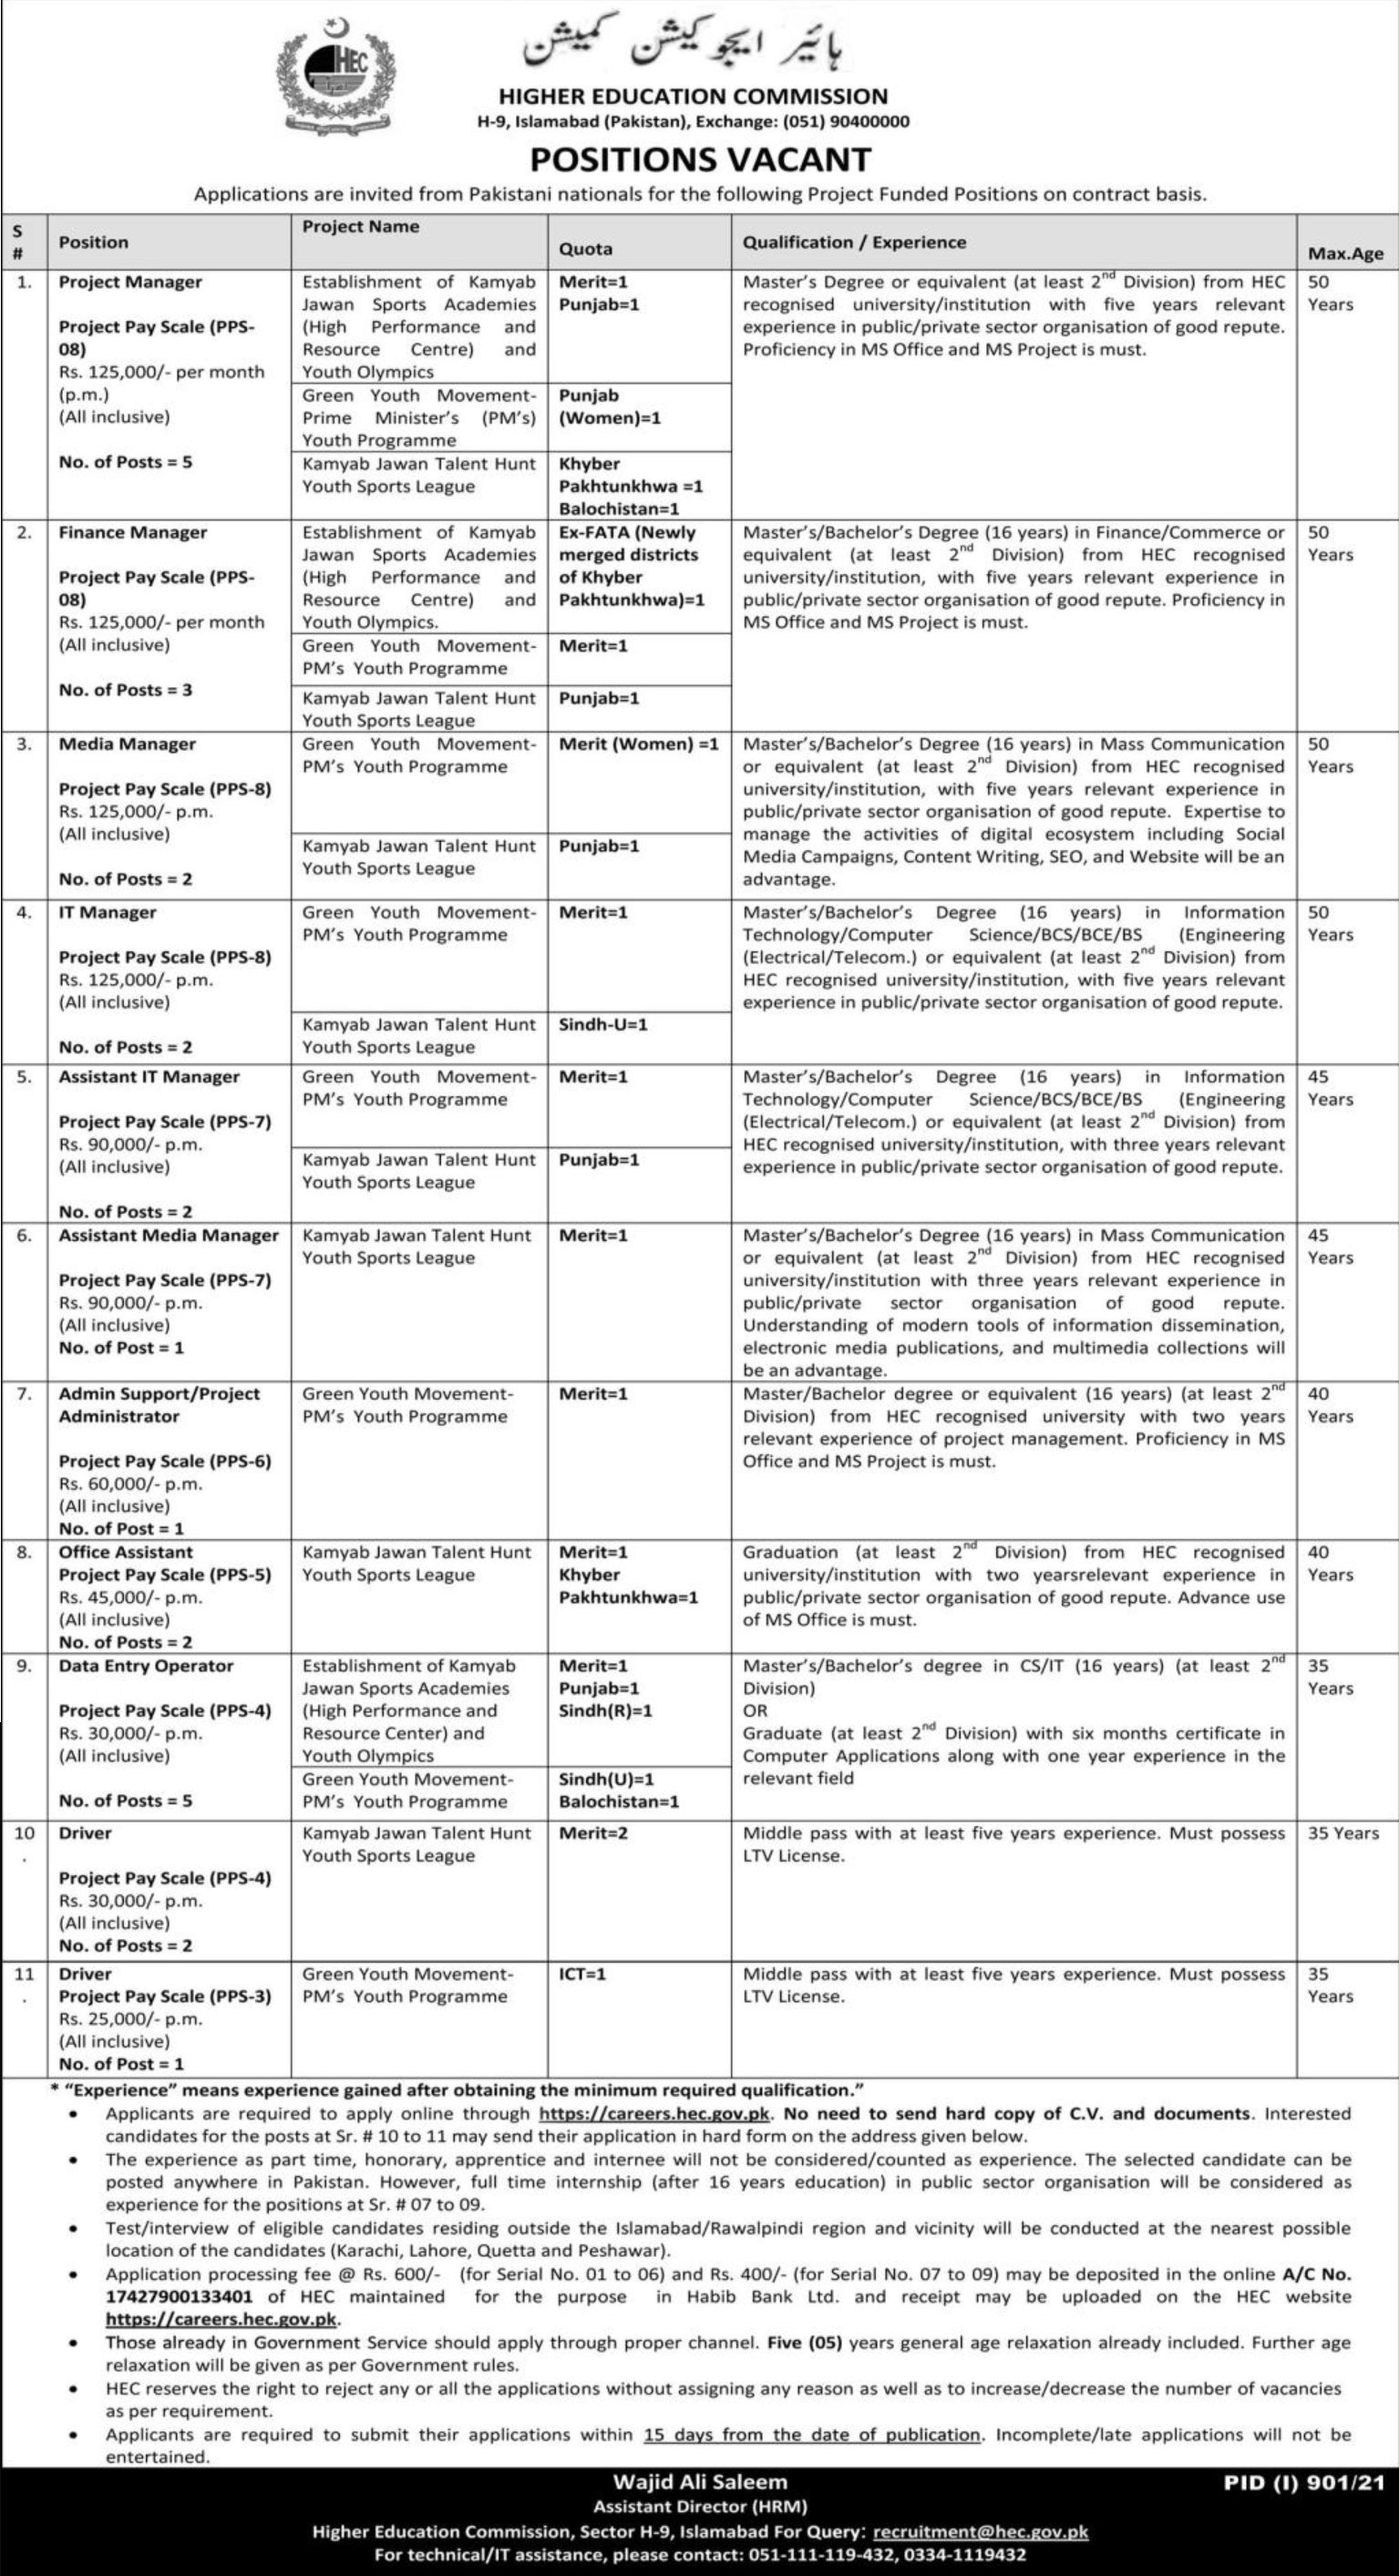 Higher Education Commission Vacancies 2021 2